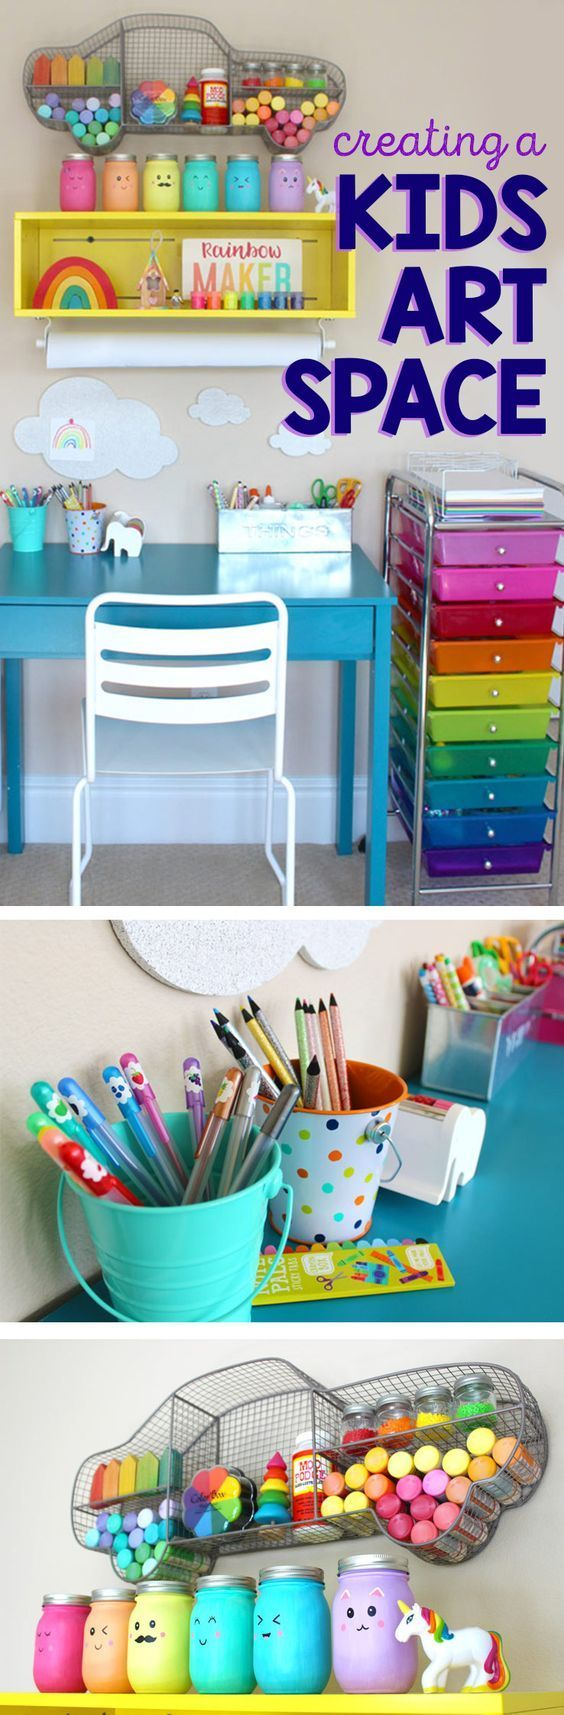 353 best crap for the kid\'s rooms. images on Pinterest | Kids rooms ...